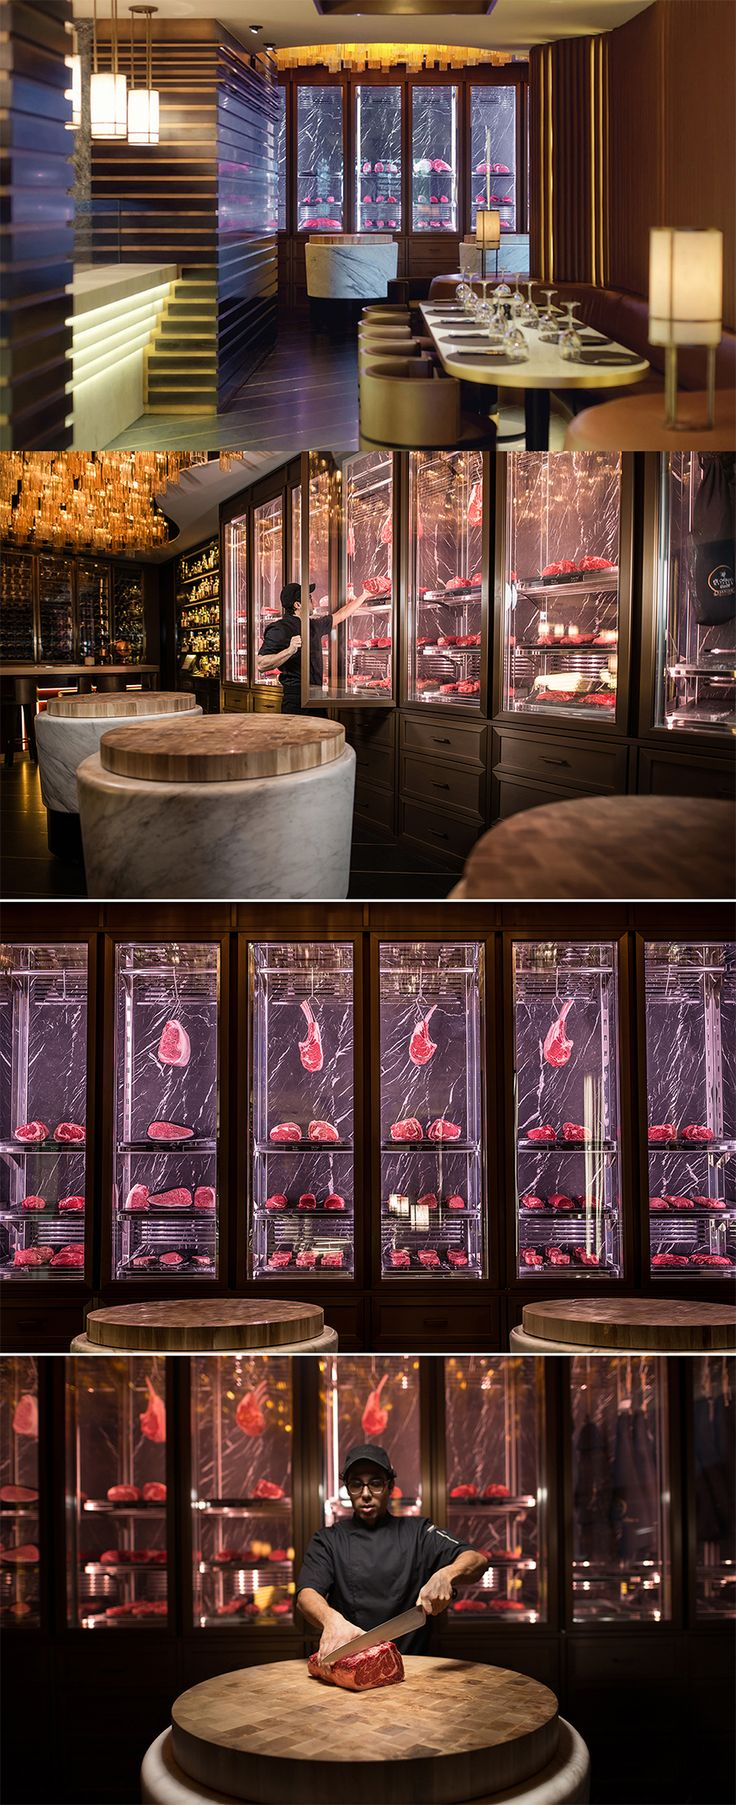 The Beefbar Butcher Shop, Monaco http://thecoolhunter.net/the-beefbar-butcher-shop-monaco/